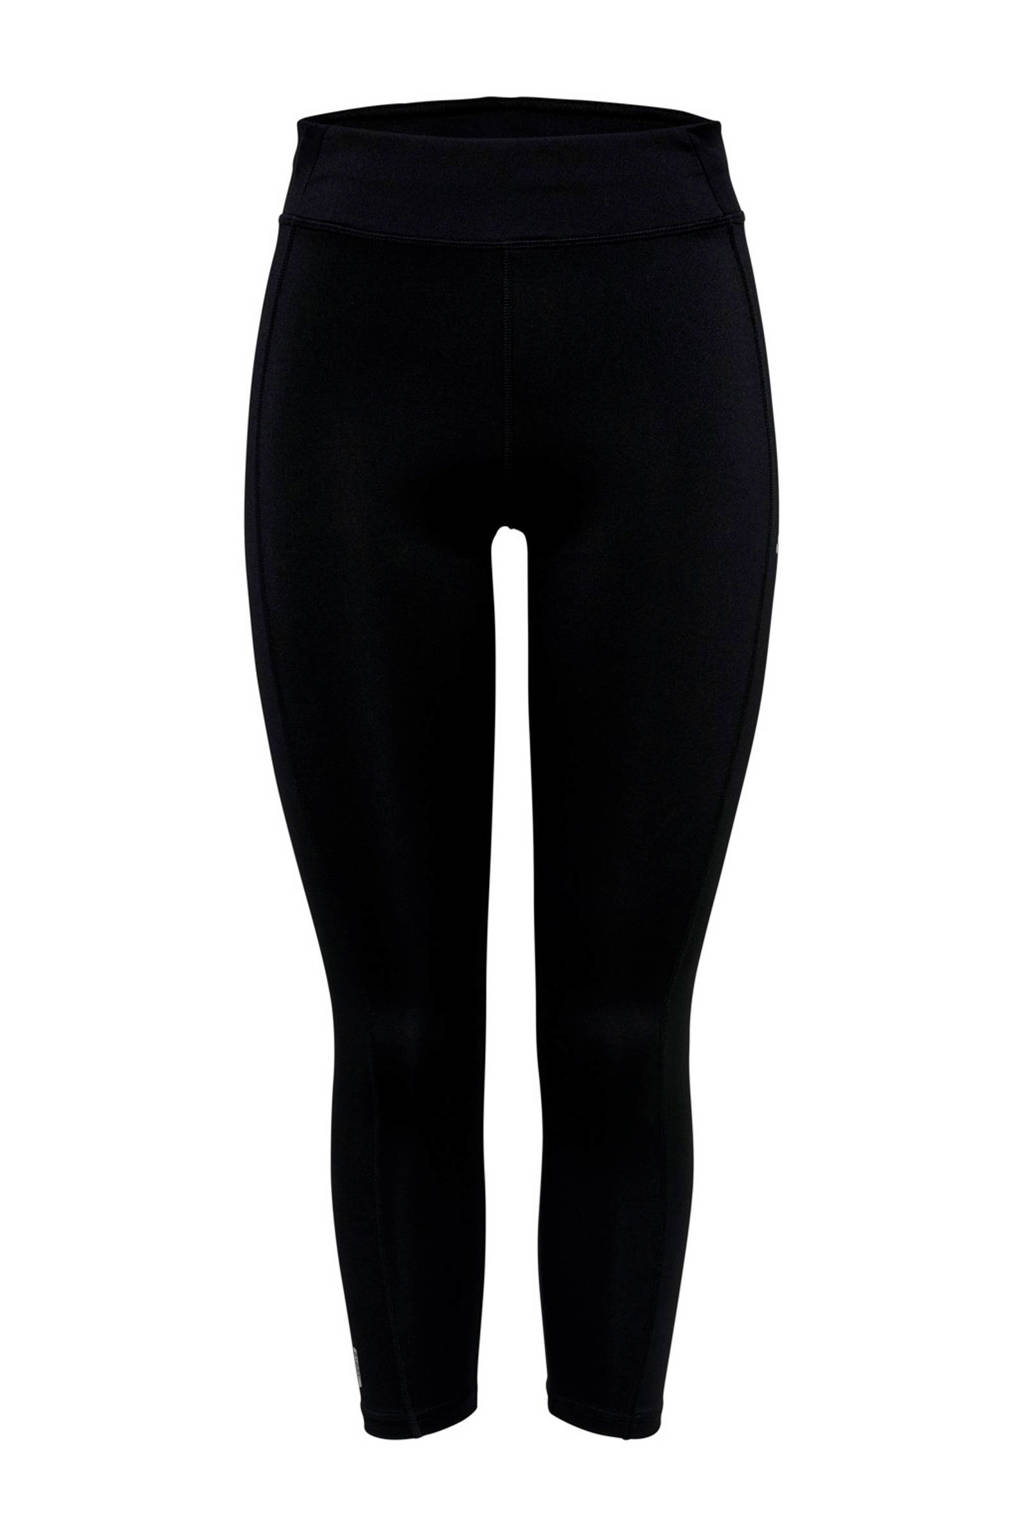 ONLY PLAY high waist 7/8 sportbroek, Zwart